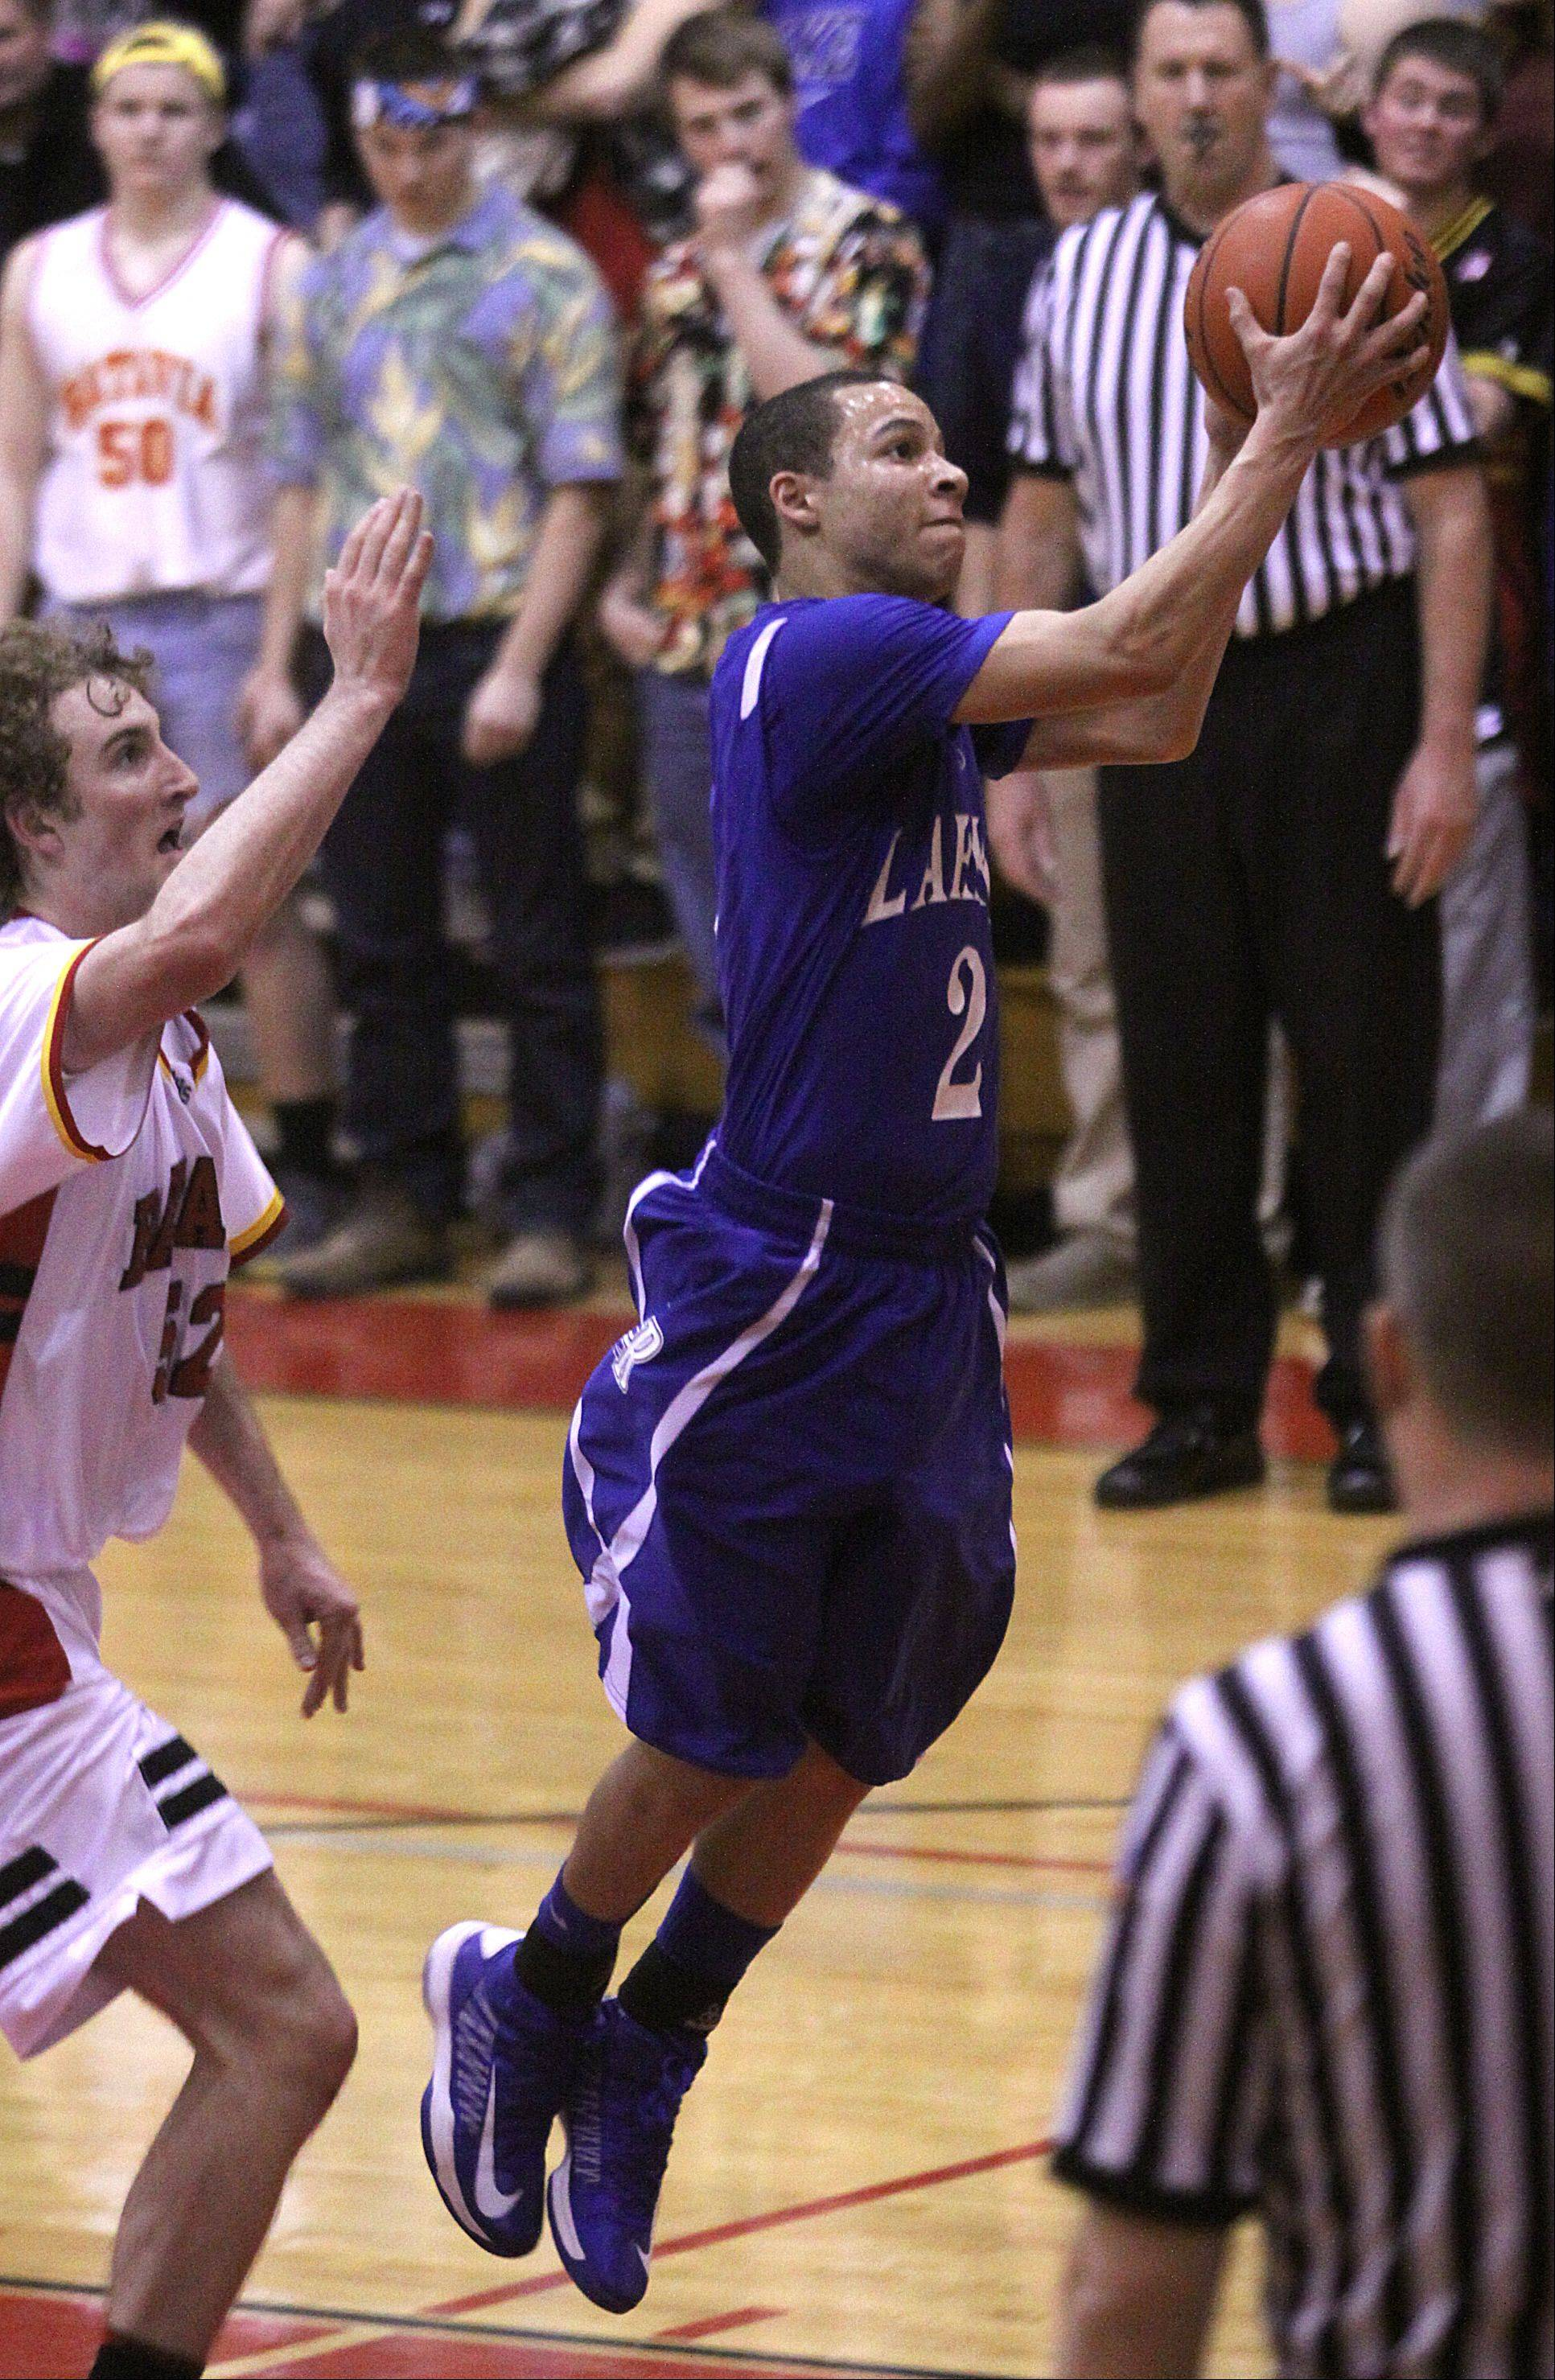 Batavia's Luke Horton, left watches as Larkin's Derrick Streety soars toward the hoop during a varsity basketball game at Batavia on Thursday night.